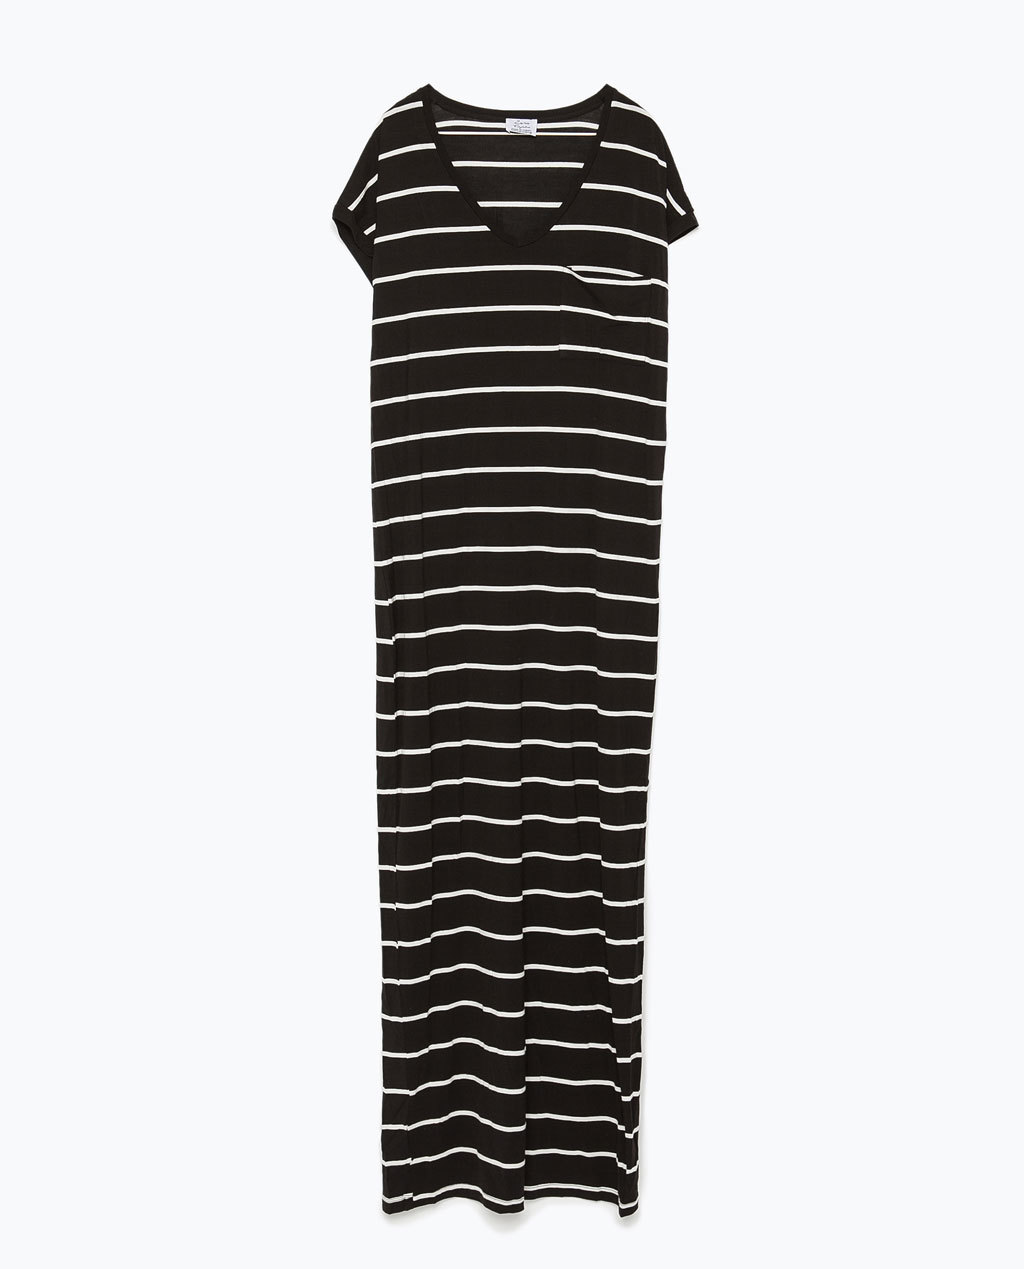 Long Striped Dress - neckline: low v-neck; fit: loose; pattern: horizontal stripes; style: maxi dress; length: ankle length; secondary colour: white; predominant colour: black; occasions: casual; sleeve length: short sleeve; sleeve style: standard; pattern type: fabric; pattern size: standard; texture group: jersey - stretchy/drapey; season: s/s 2015; wardrobe: basic